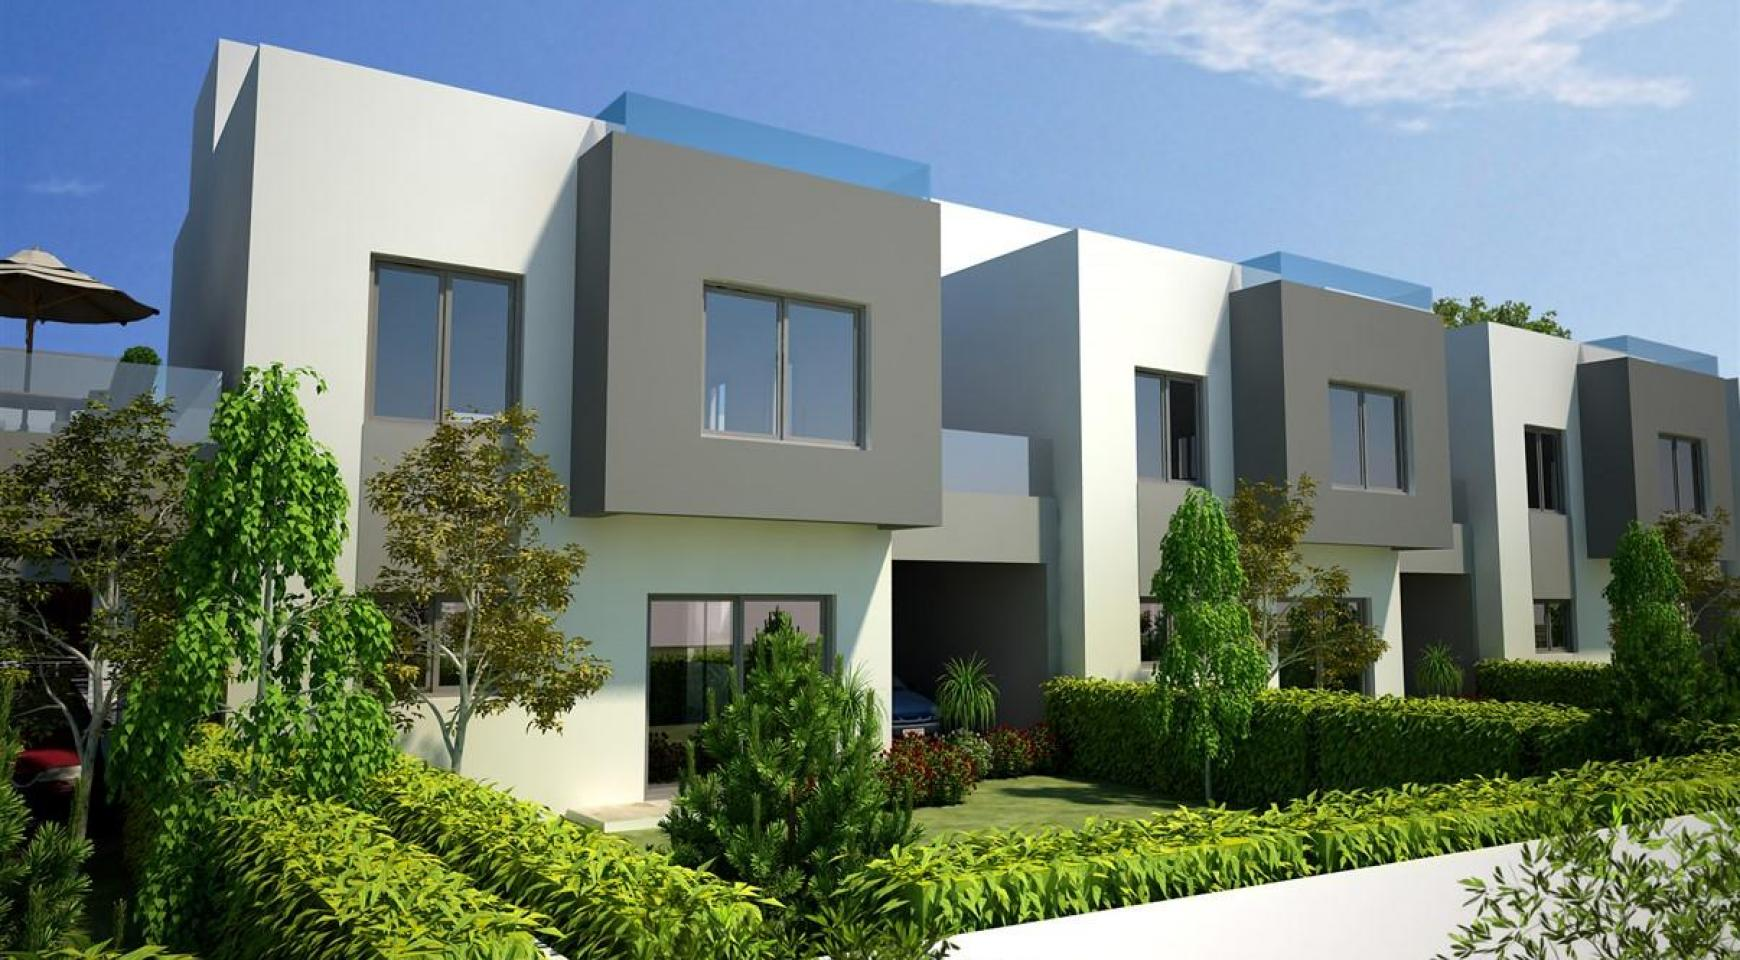 3 Bedroom Villa in a New Project - 32